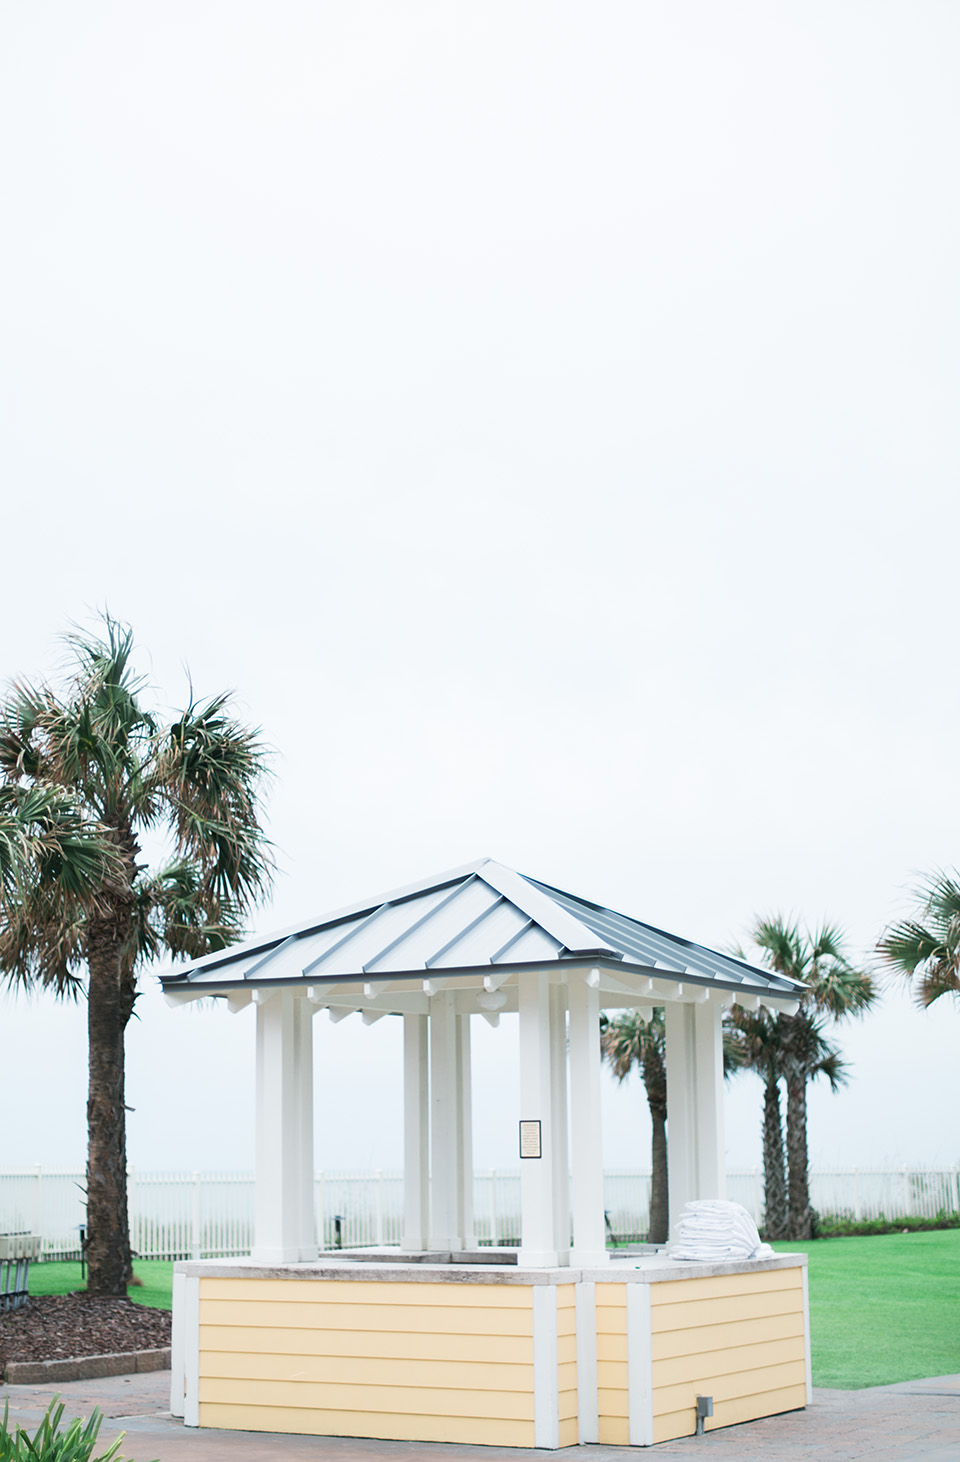 Image of a coastal pavilion, light yellow,  at the Omni Amelia Island Plantation Resort.